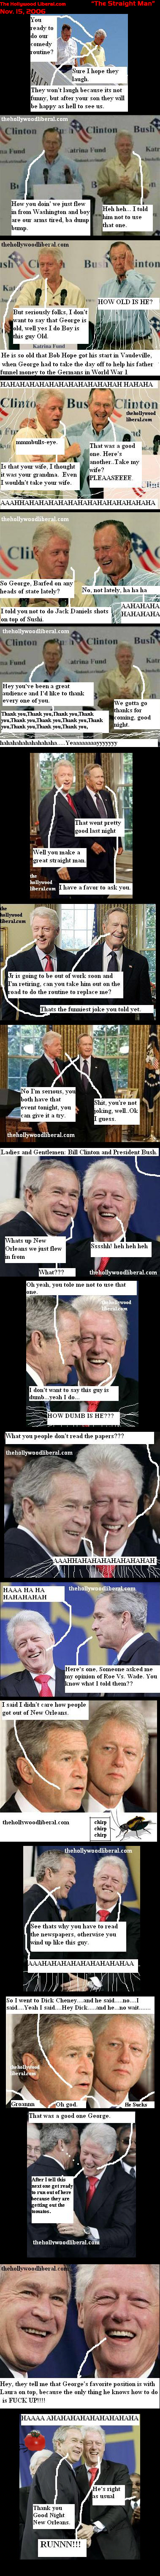 Bush and clinton channel abbot and costello